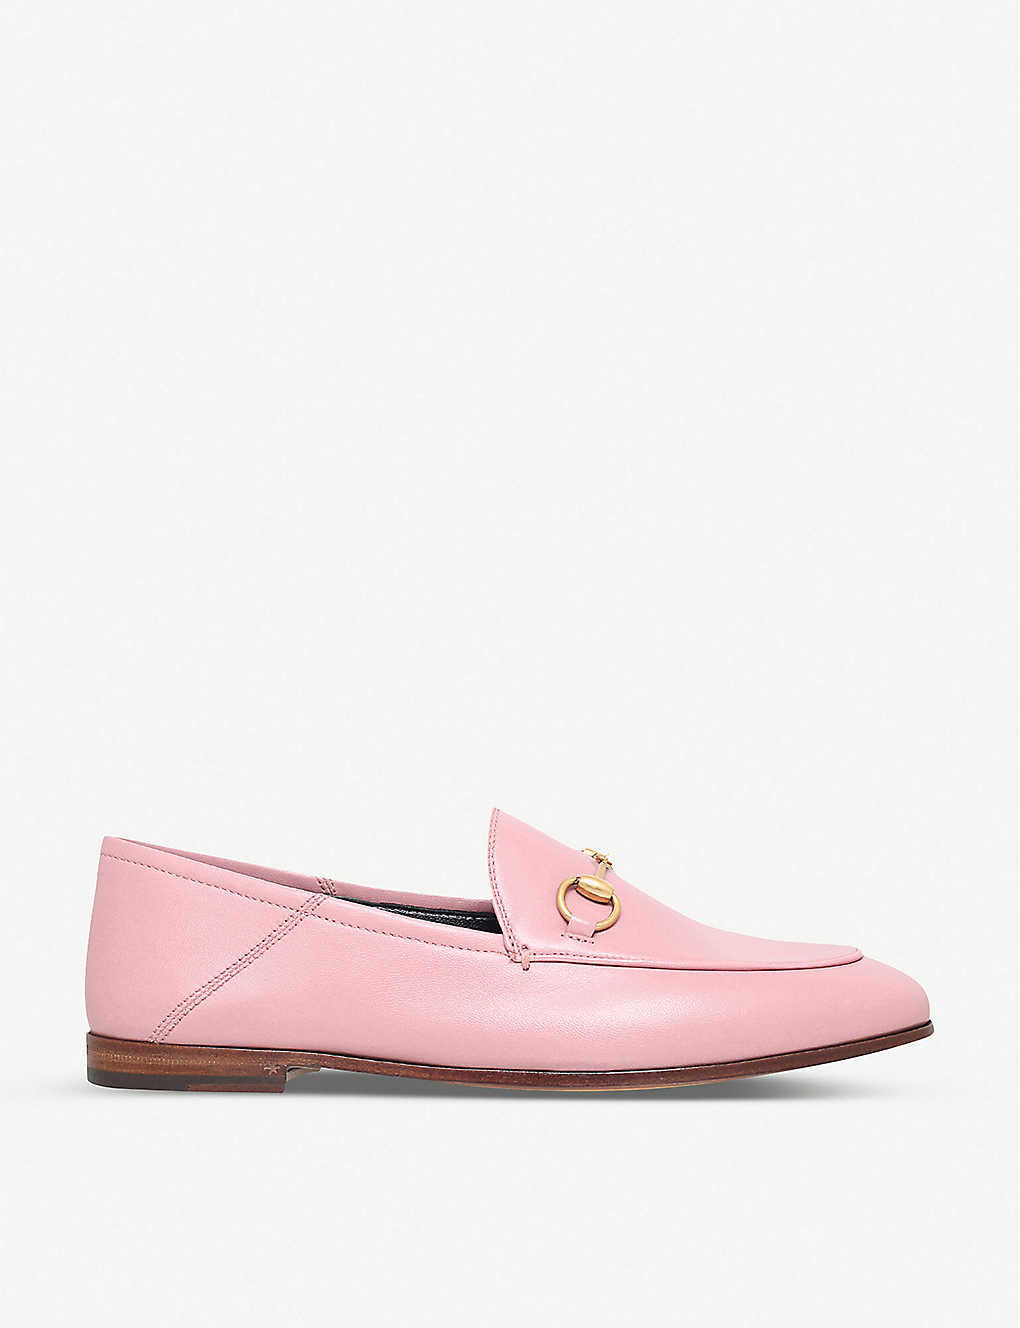 dfc59a01dbc Brixton leather loafers zoom  Brixton leather loafers zoom ...